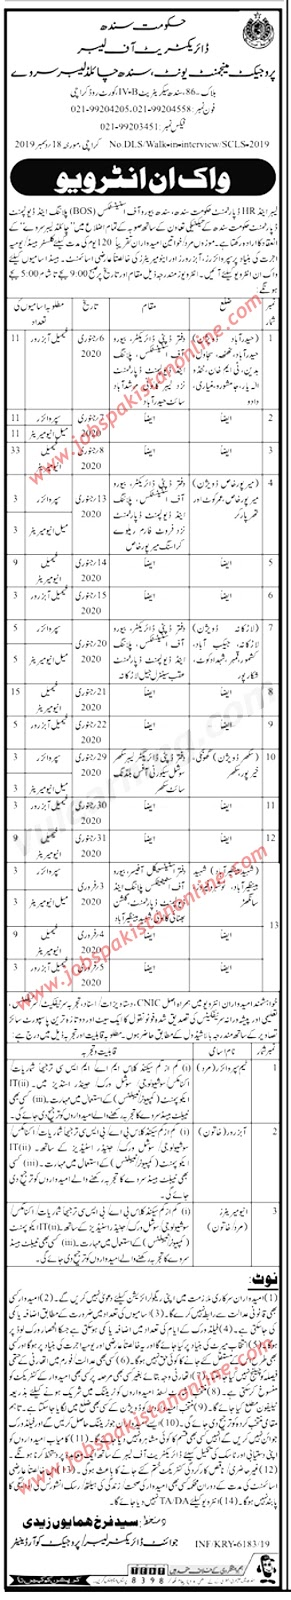 NEW JOBS IN SINDH LATEST 2019